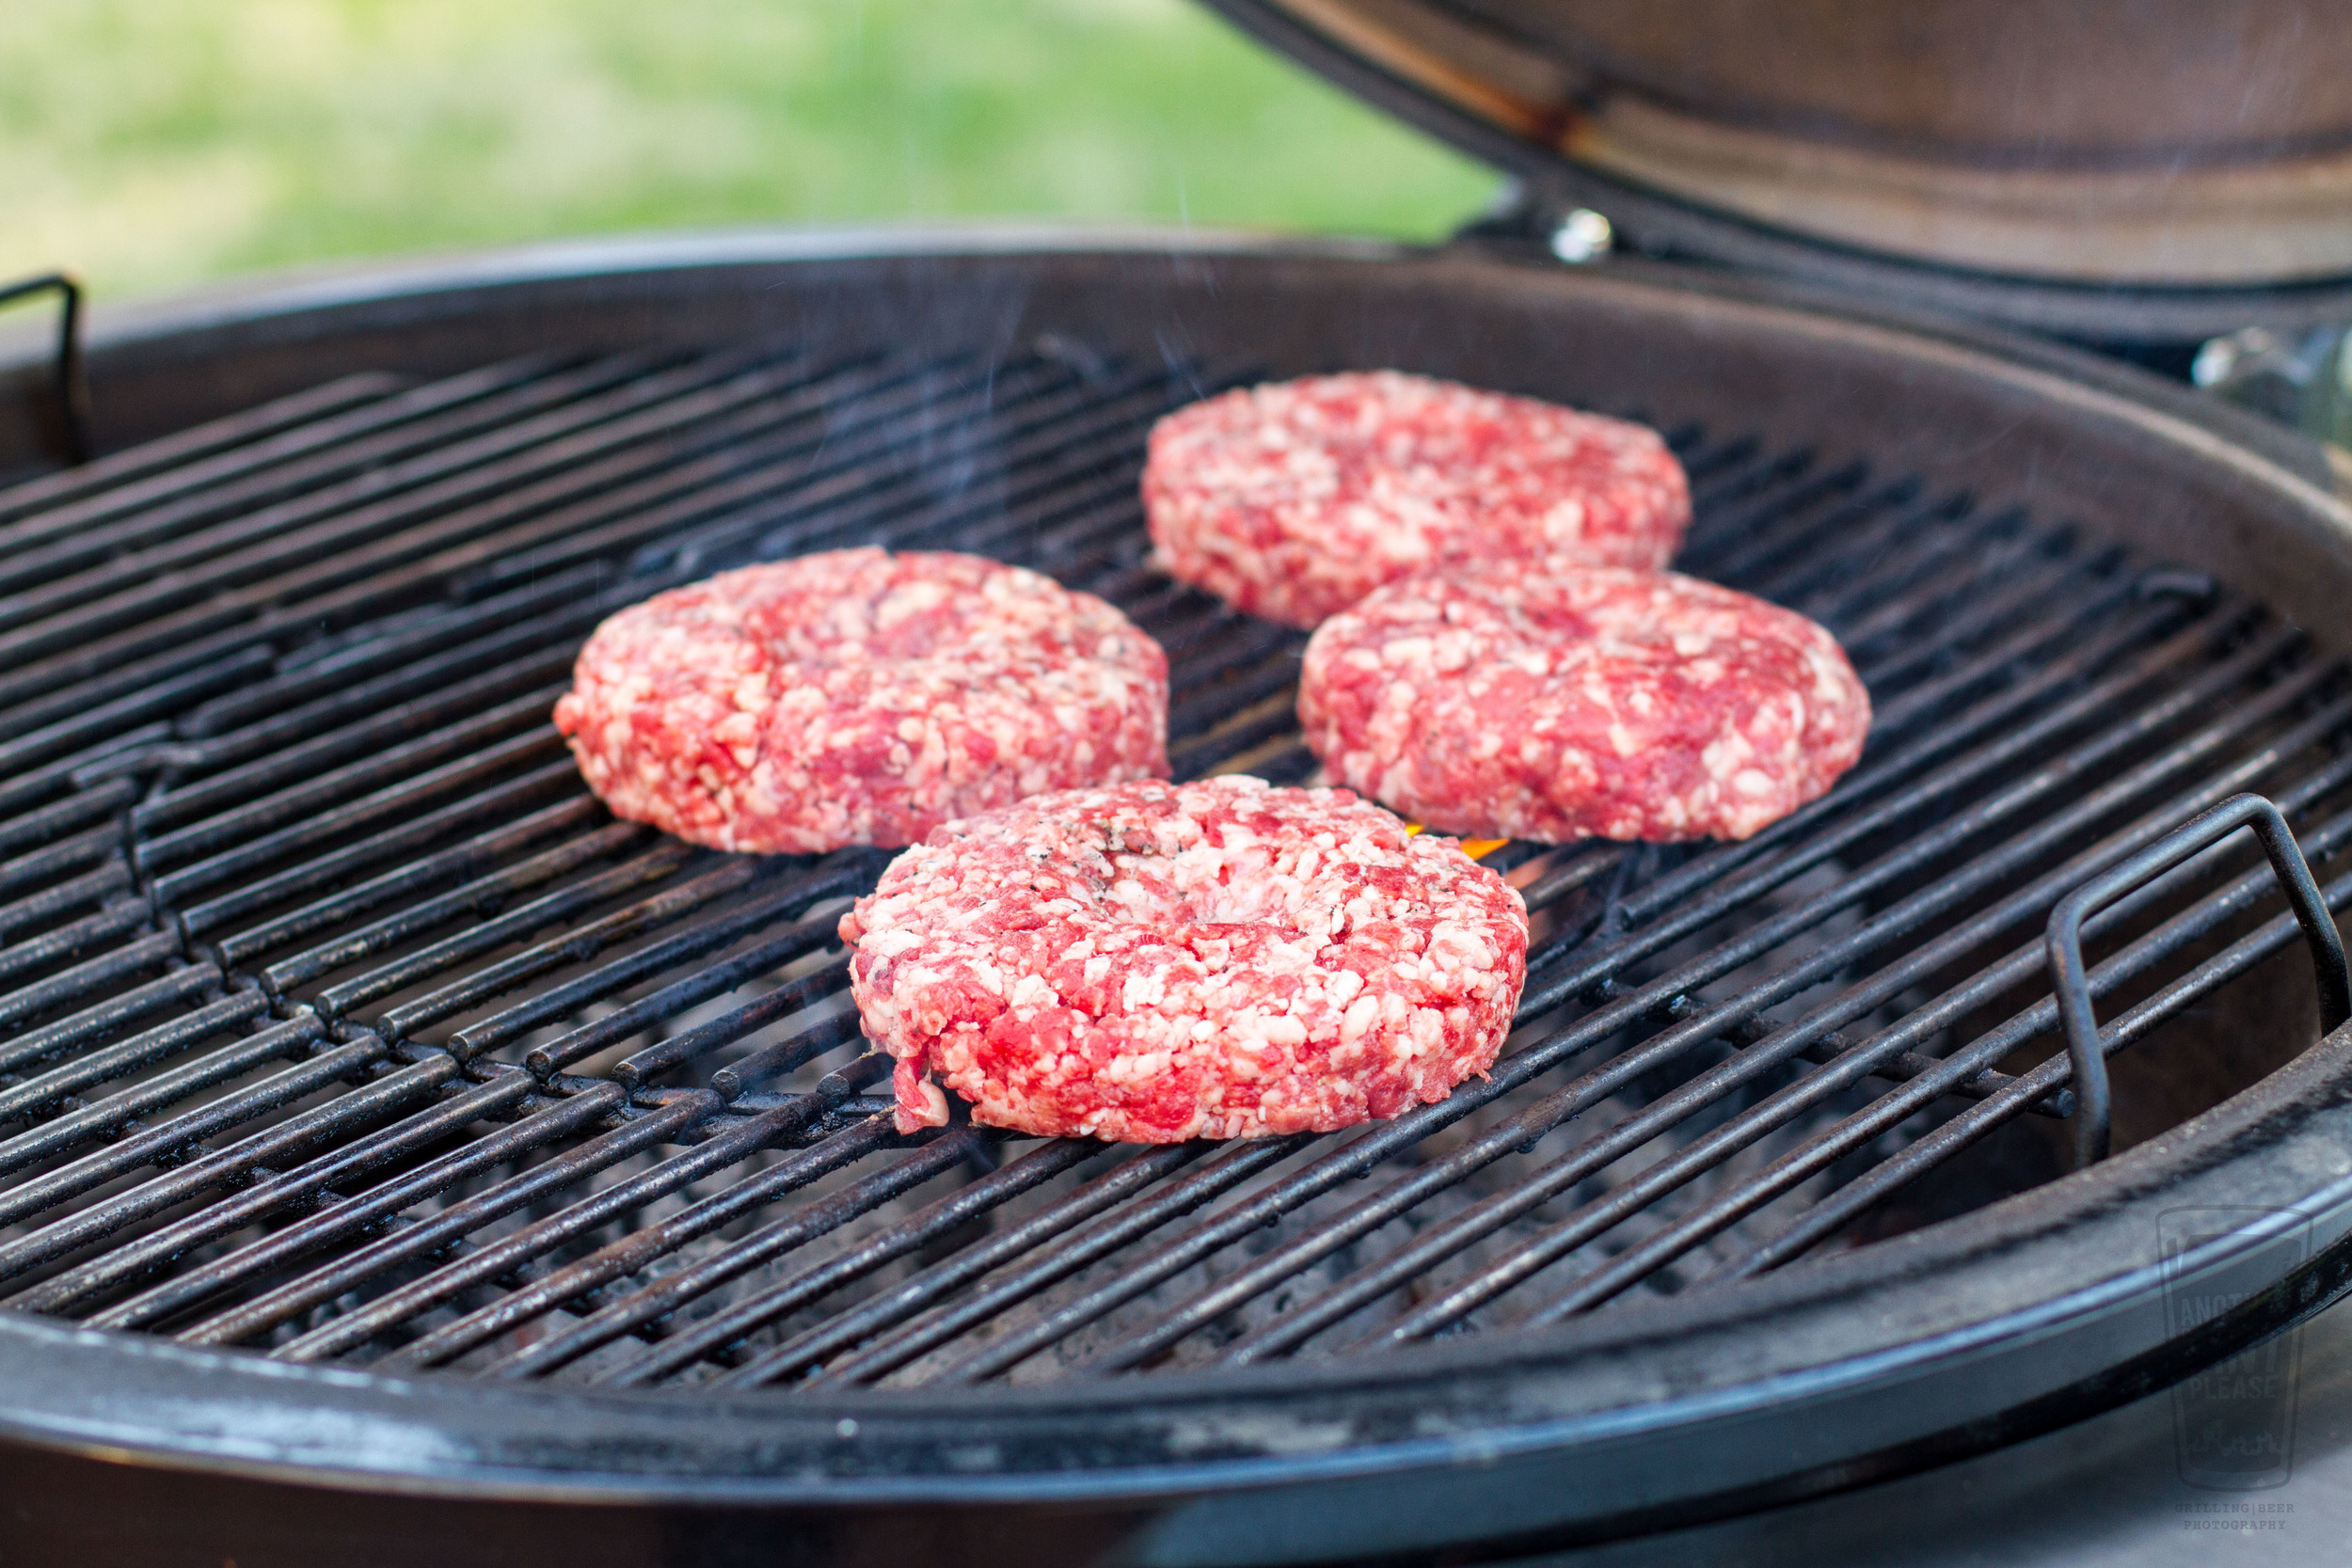 Hamburgers on Weber Grill